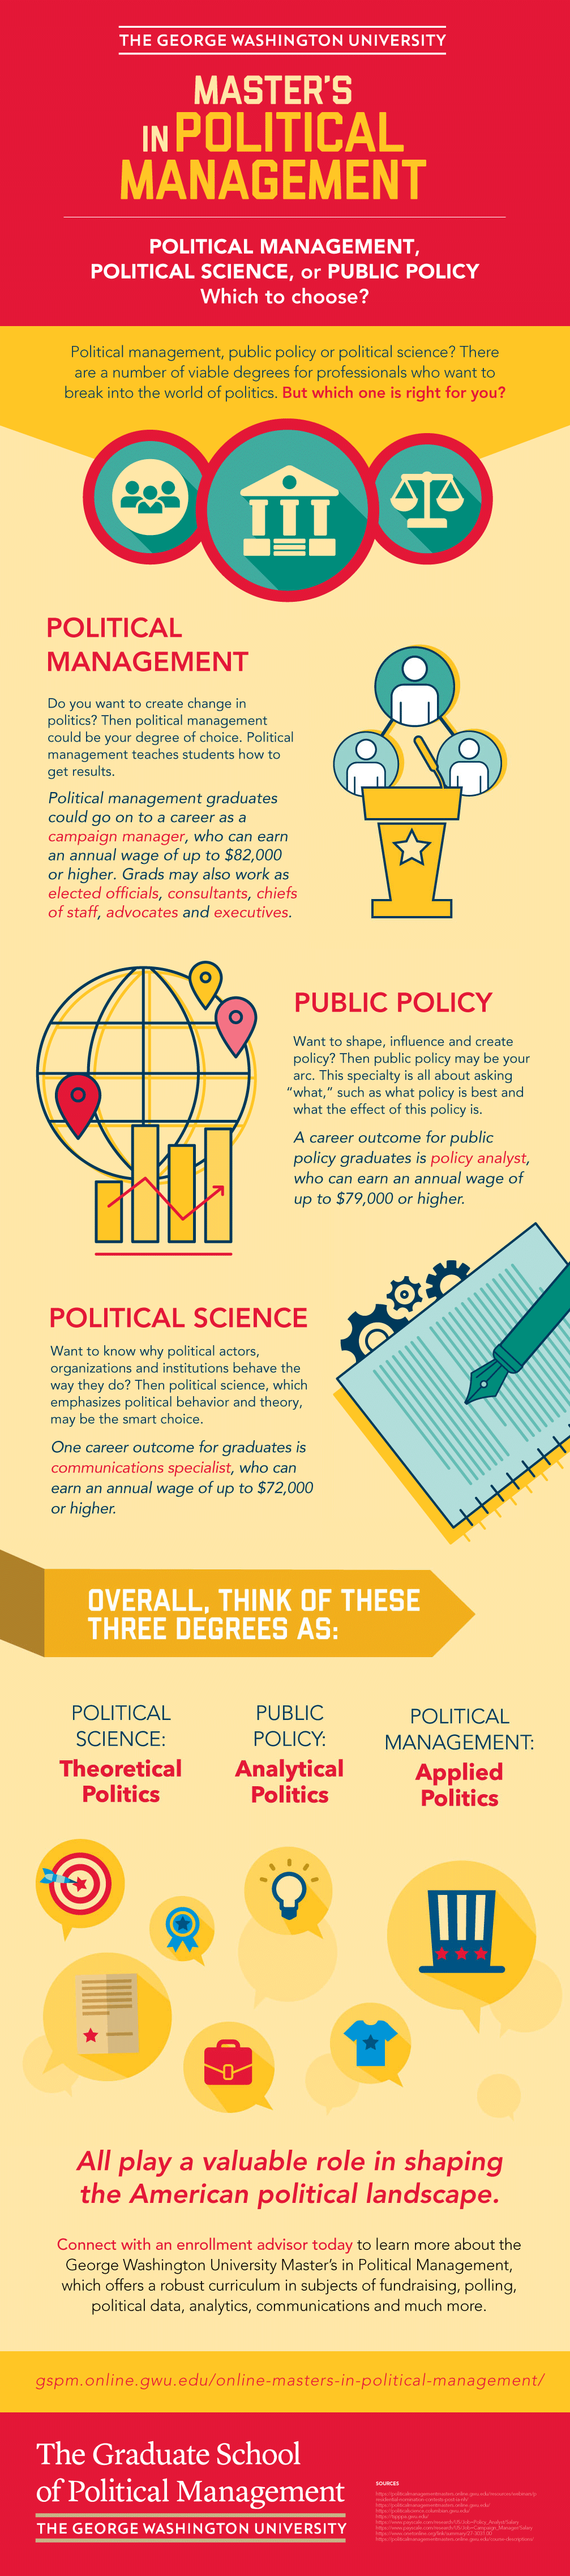 Infographic: Political Management, Political Science, or Public Policy?